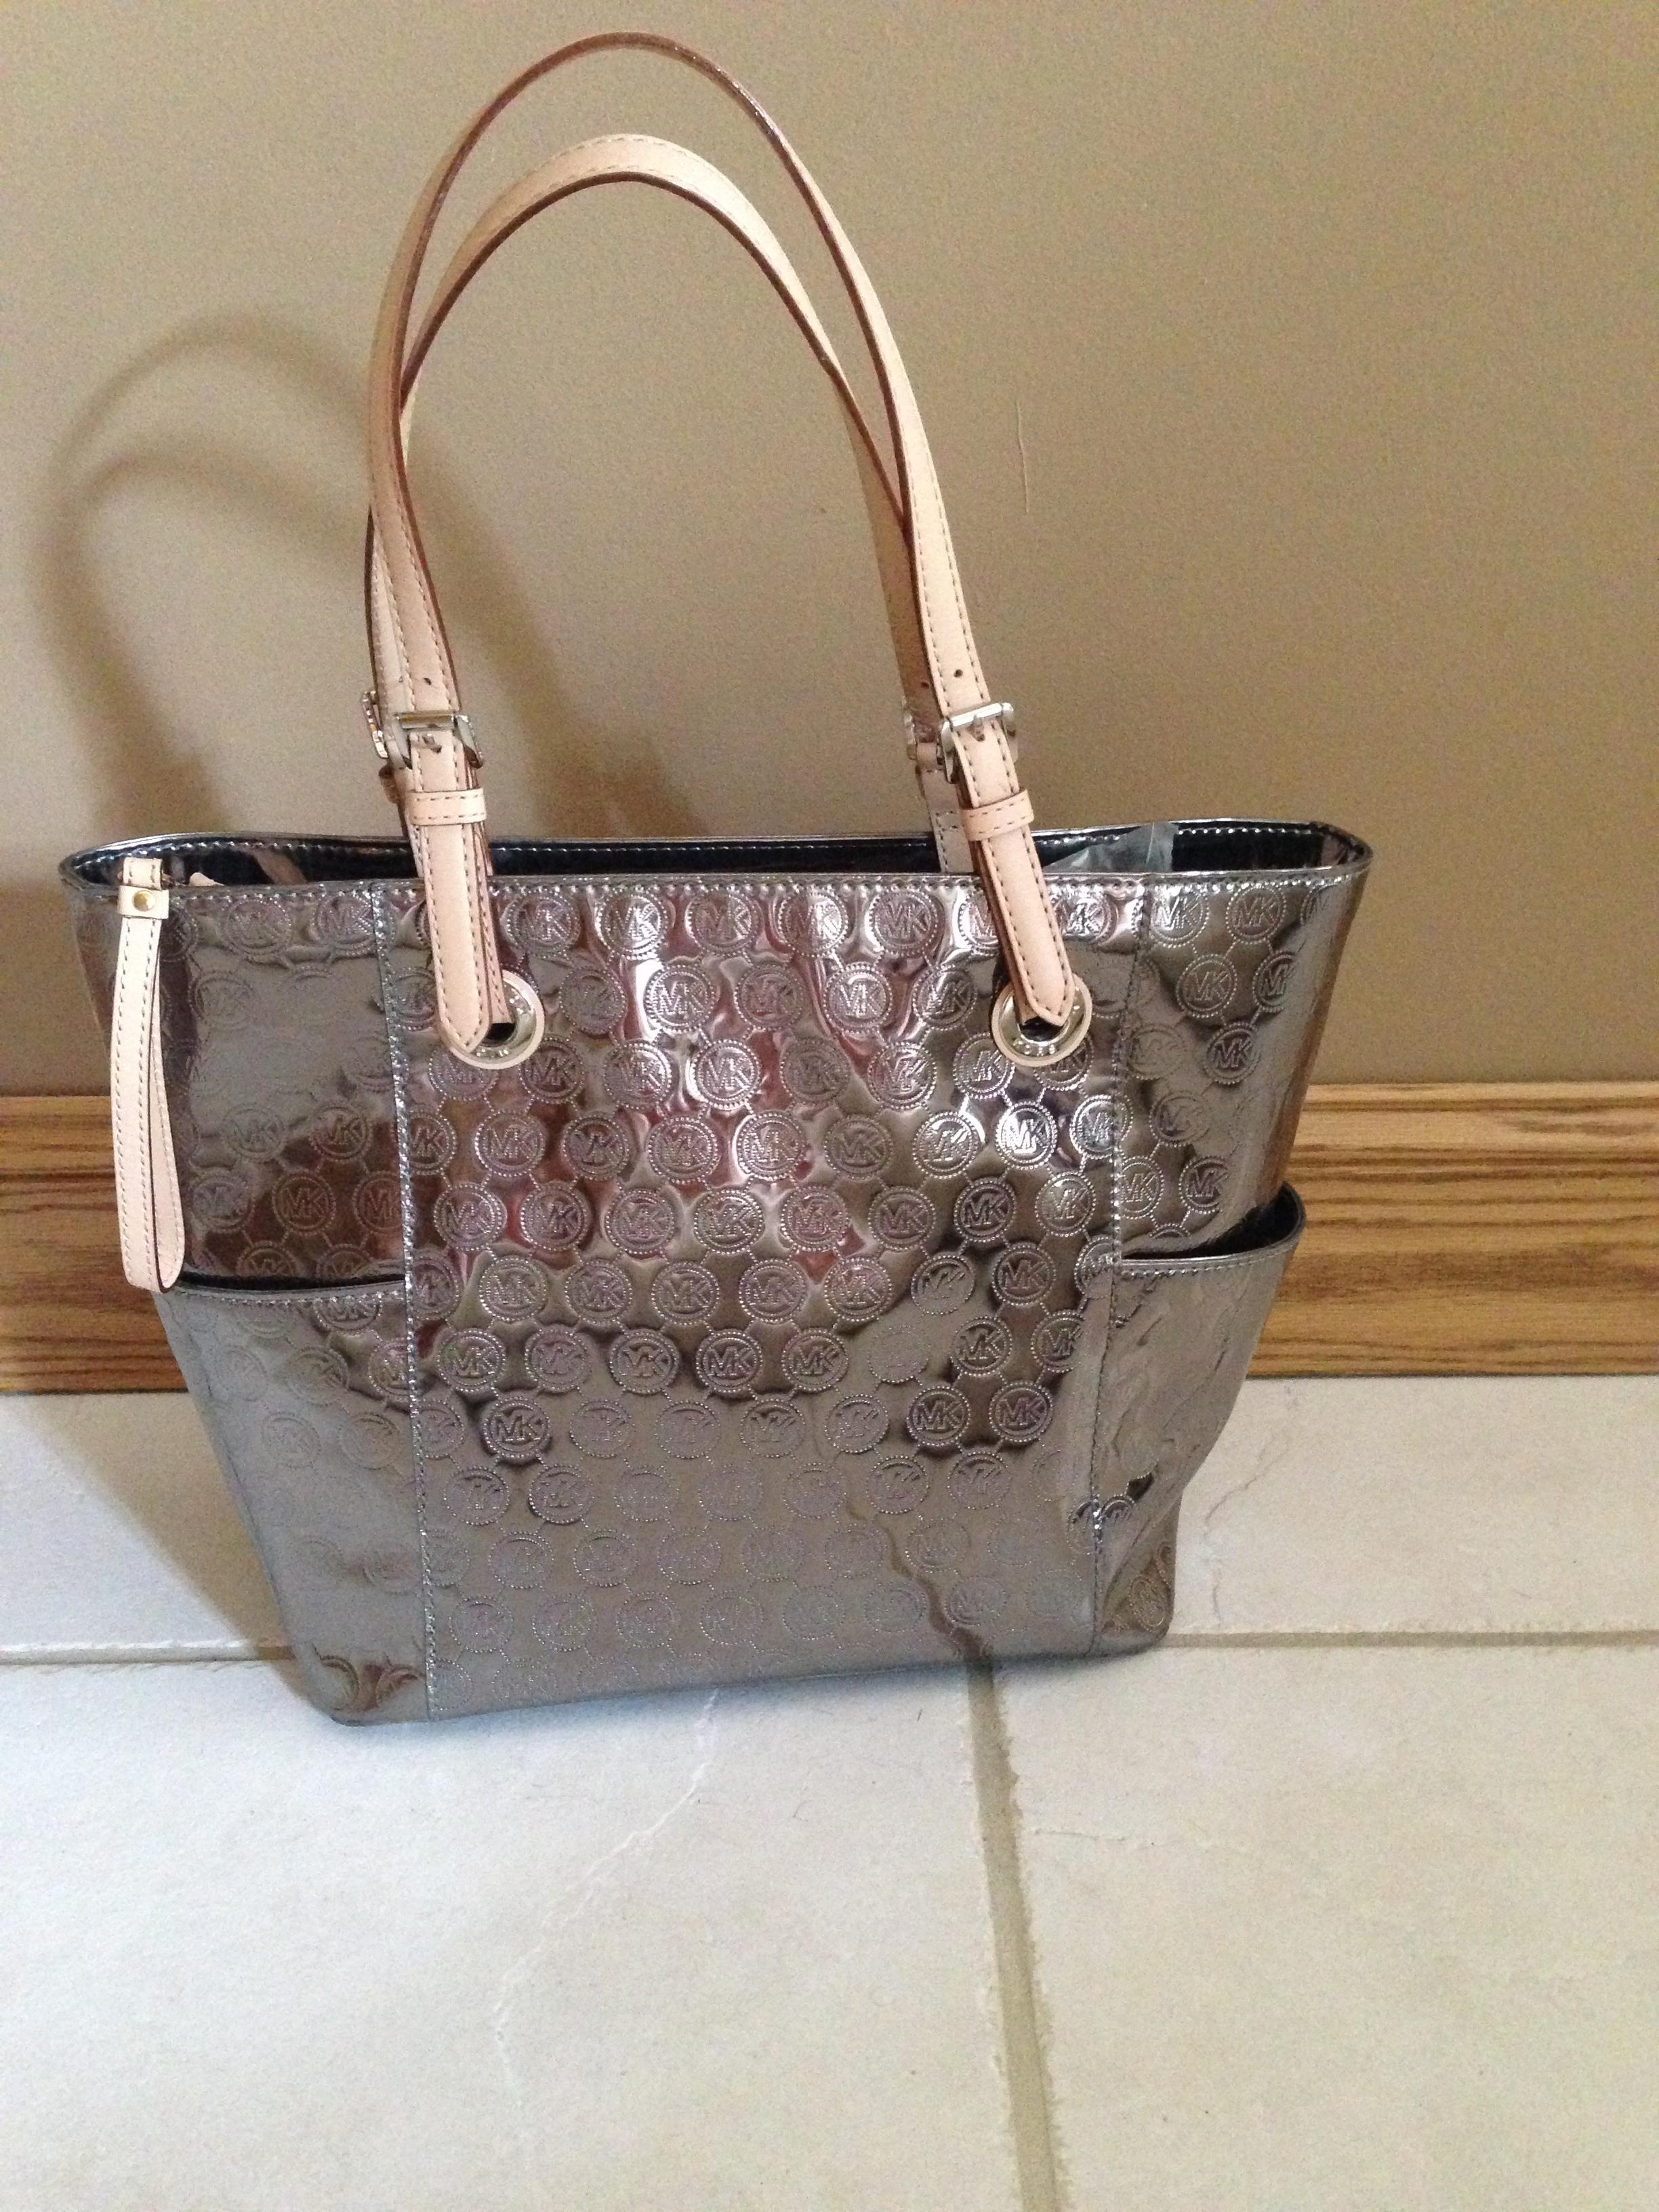 15093332459c ... new style michael kors patent leather mk monogram tote in metallic  nickel. 123 a1c67 1caff